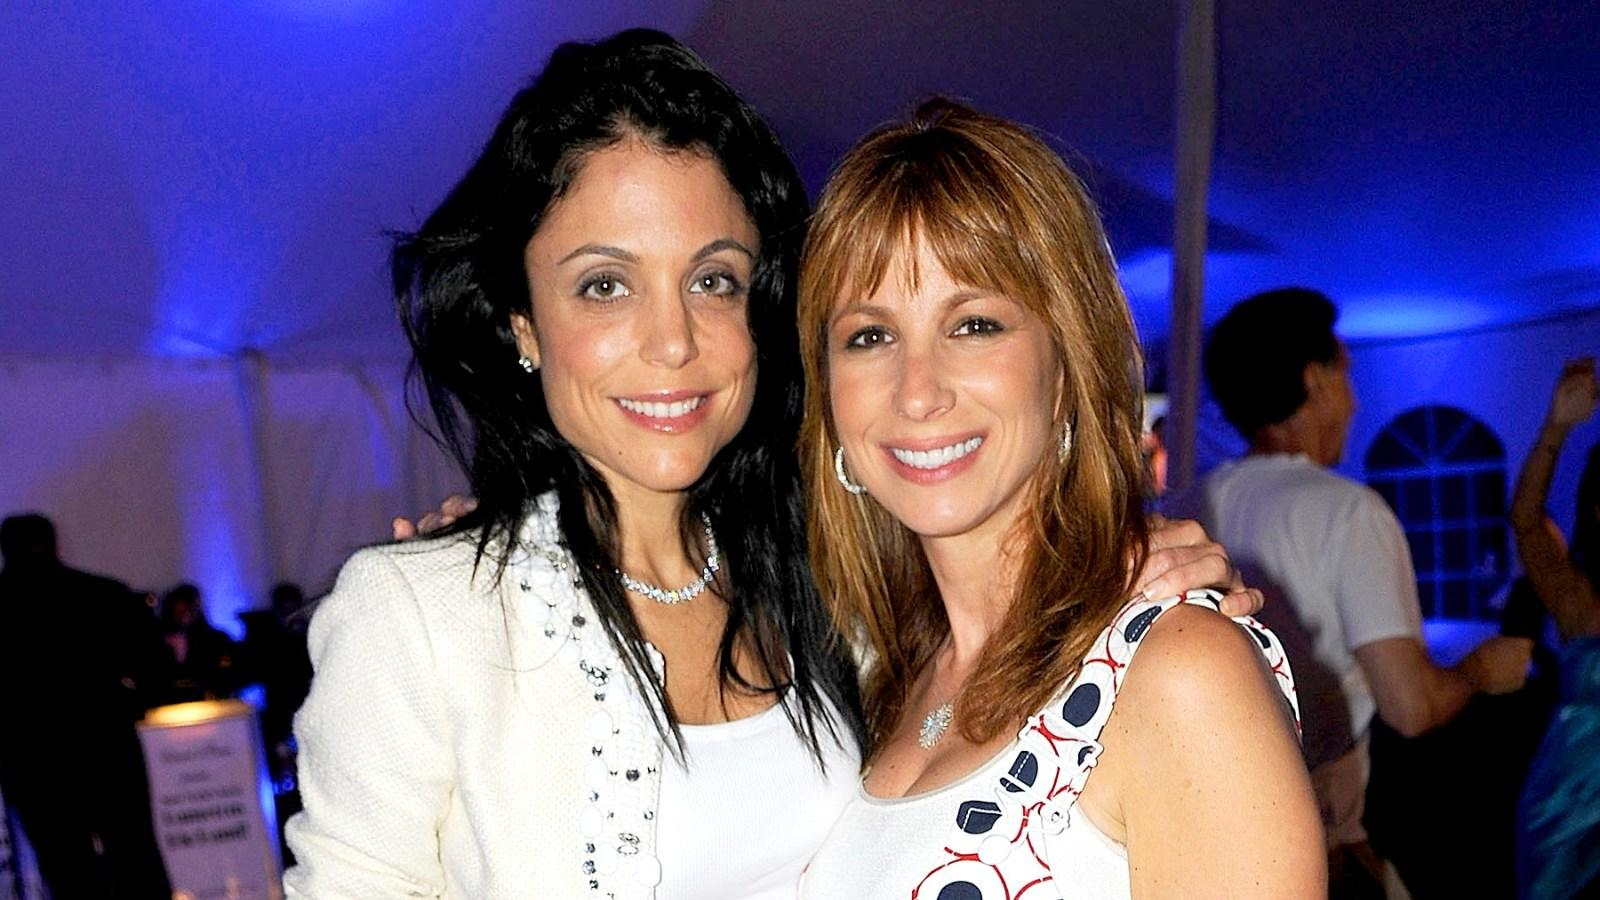 Jill Zarin Says She's All For Returning To RHONY After Bethenny Frankel's Exit